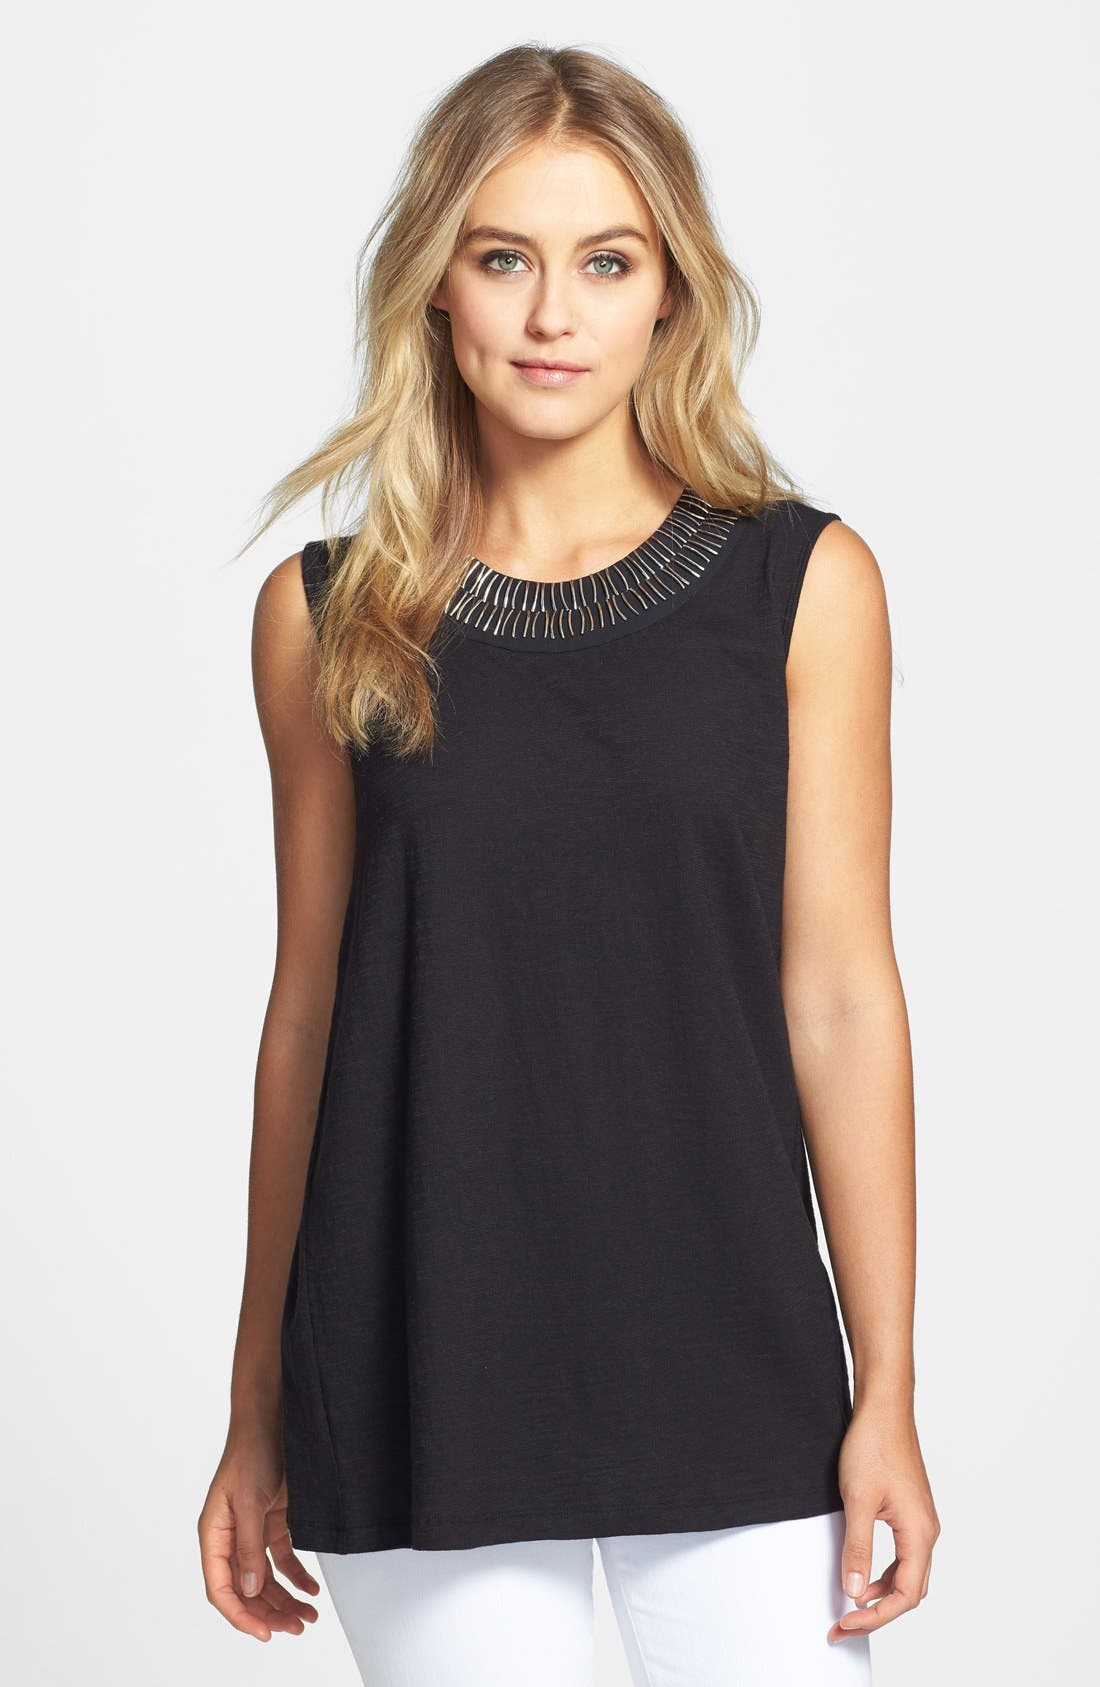 Alternate Image 1 Selected - Vince Camuto Embellished Neck Sleeveless Top